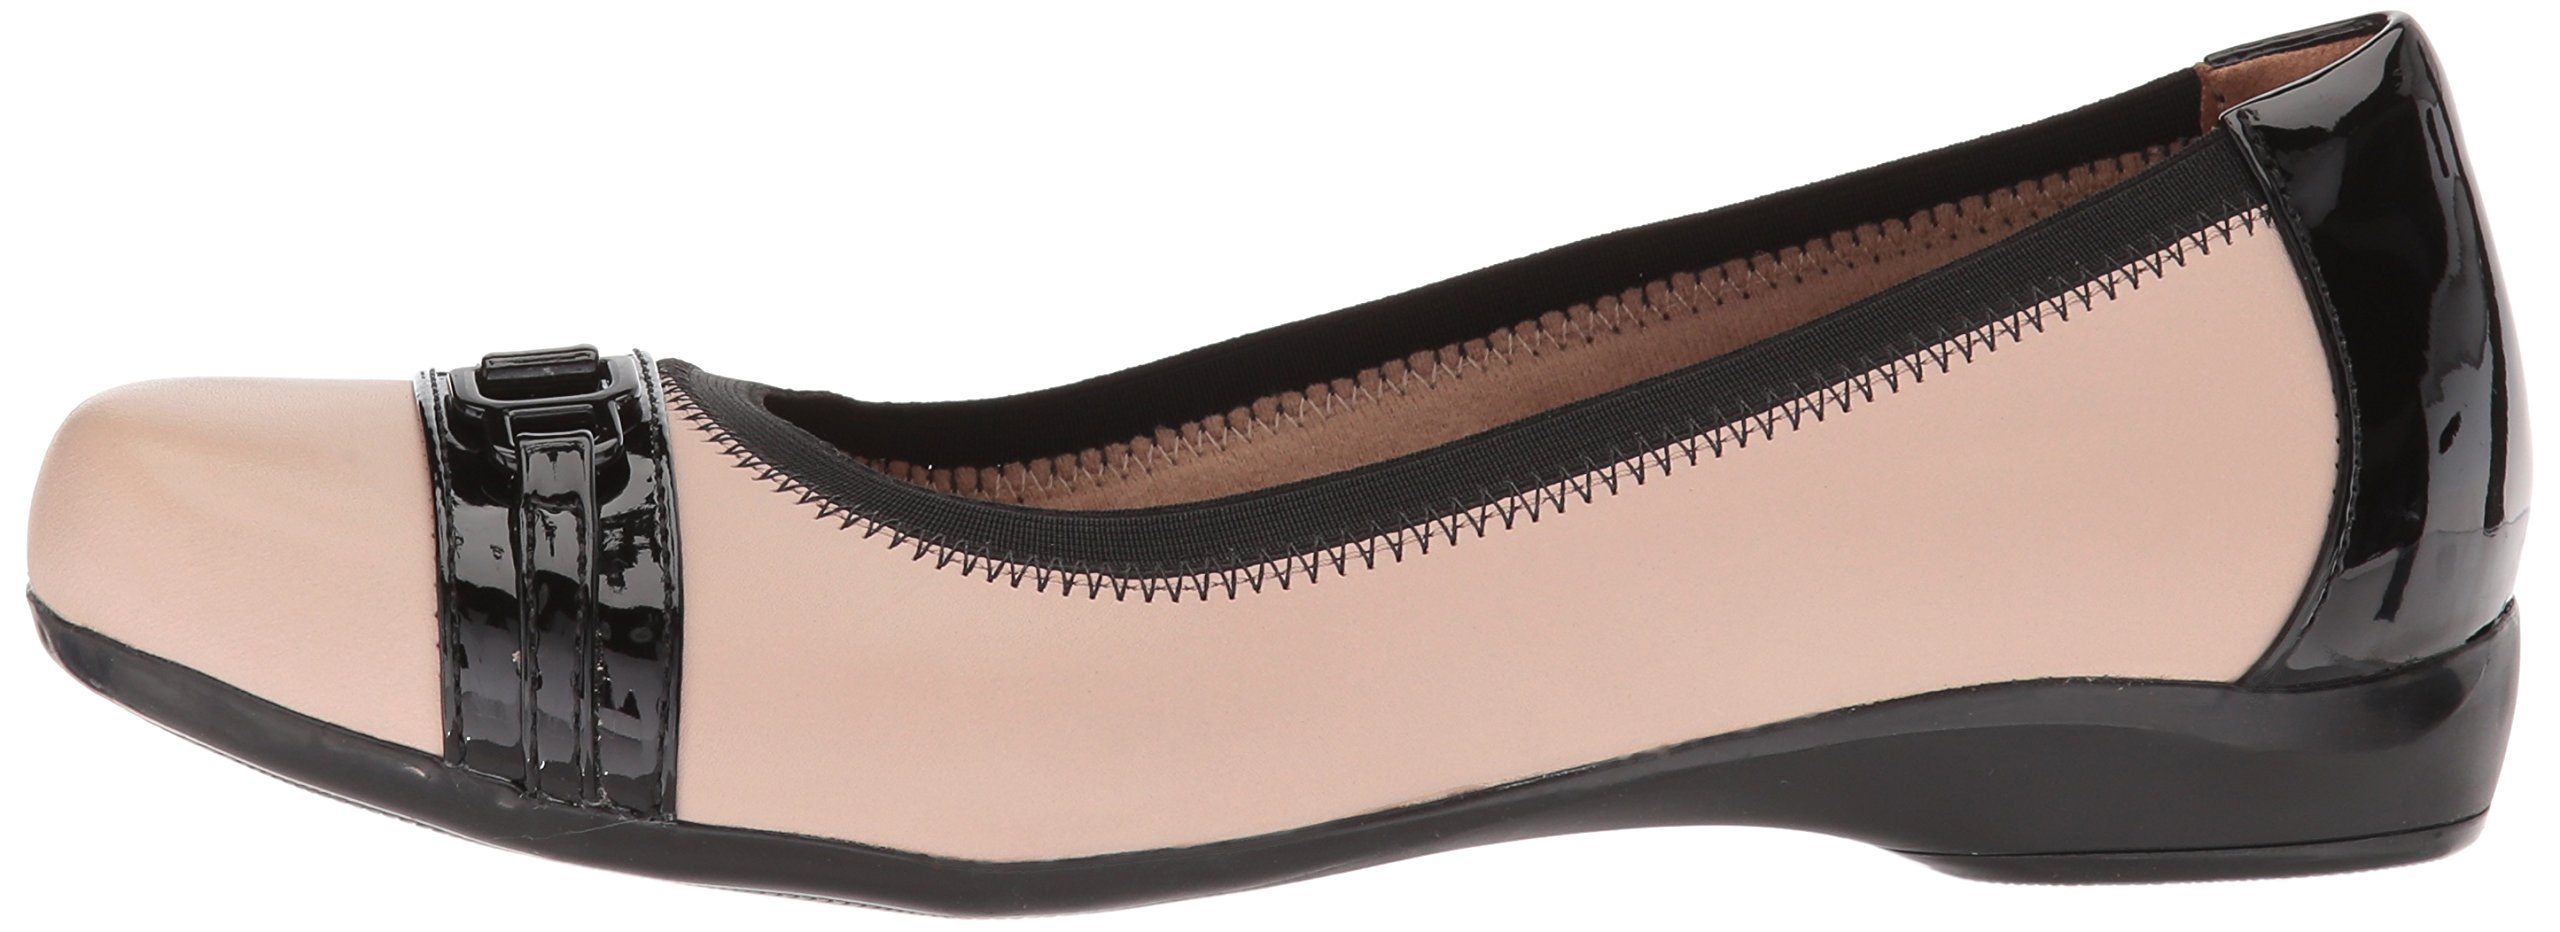 CLARKS Women's Kinzie Light Loafer Flat, Cream Leather/Synthetic Patent, 12 Medium US by CLARKS (Image #5)